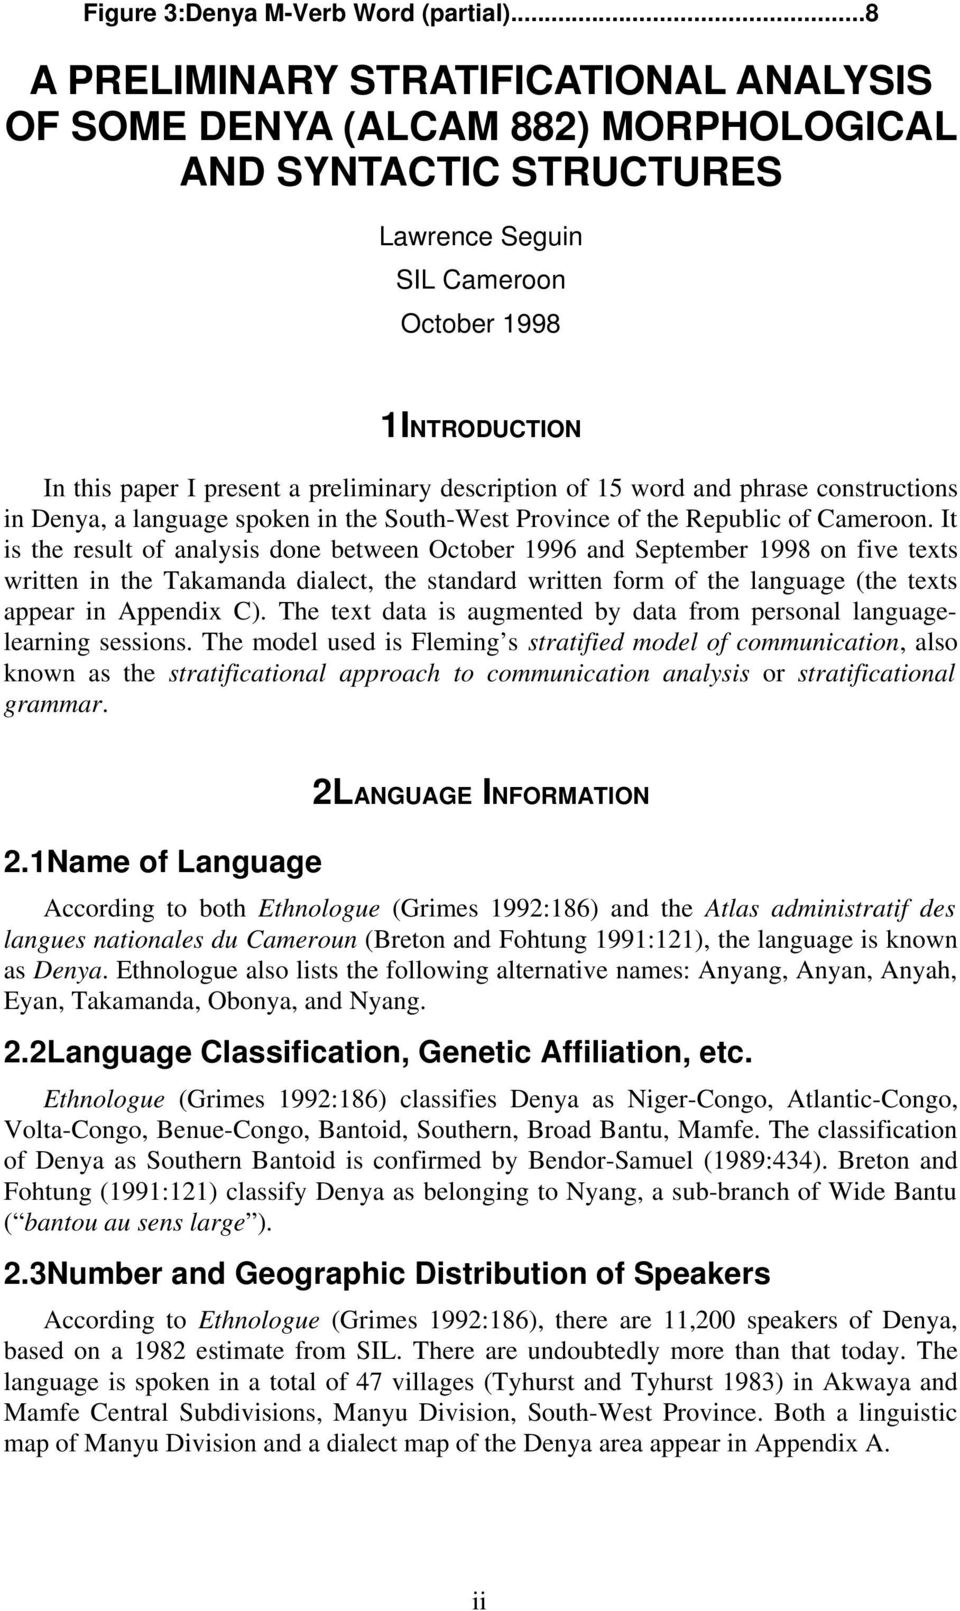 preliminary description of 15 word and phrase constructions in Denya, a language spoken in the South-West Province of the Republic of Cameroon.